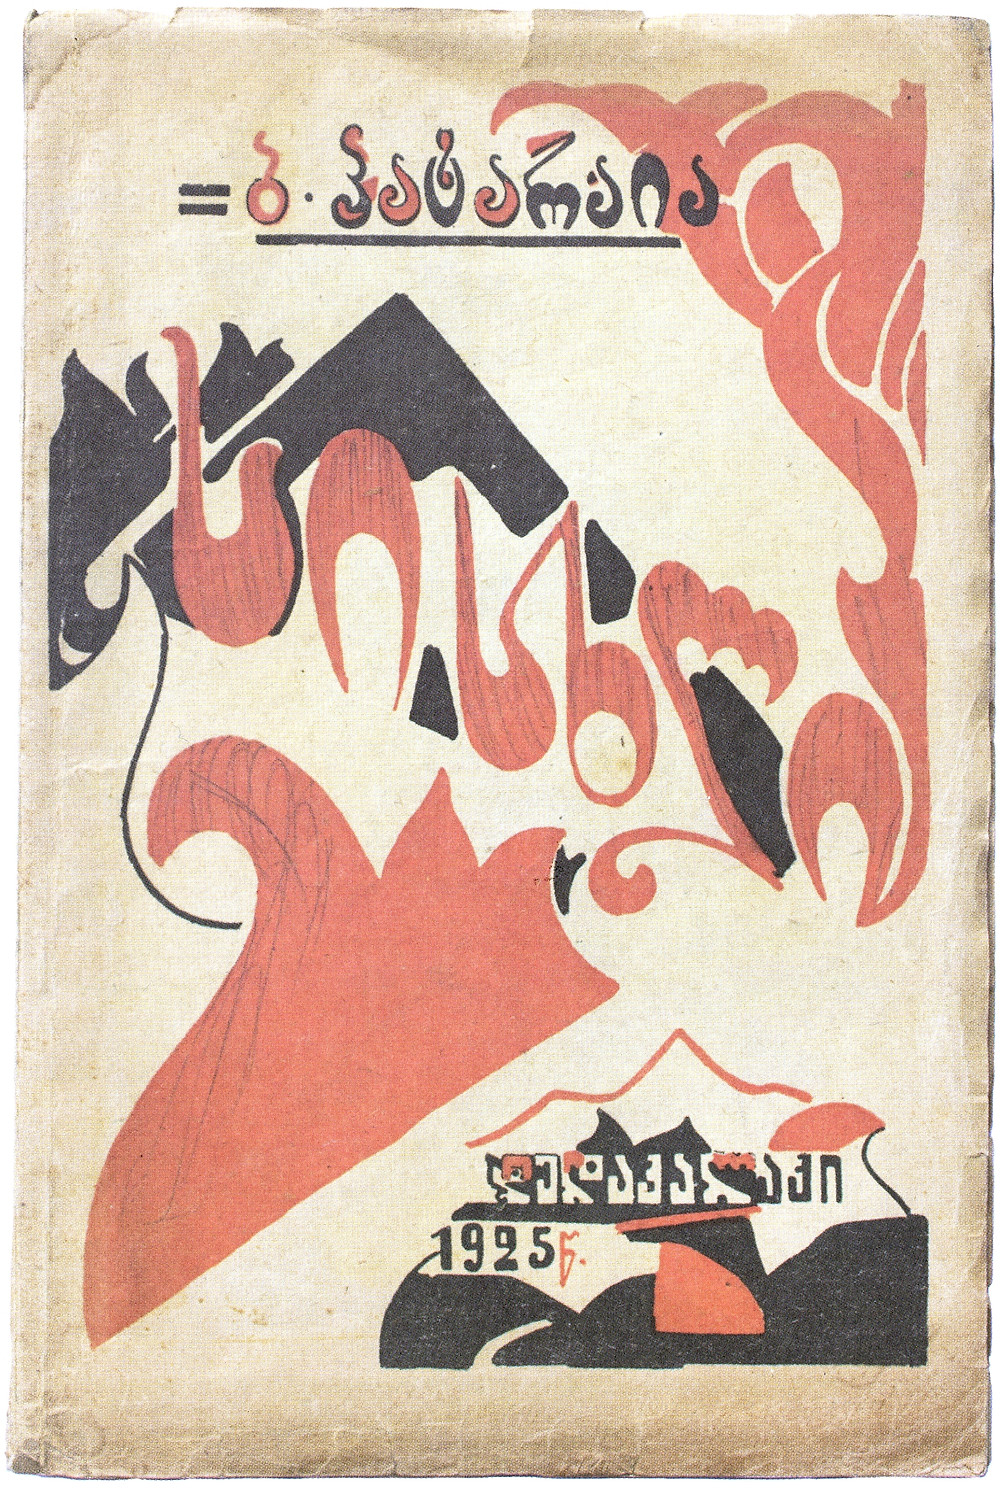 Cover designer unknown, 1925.